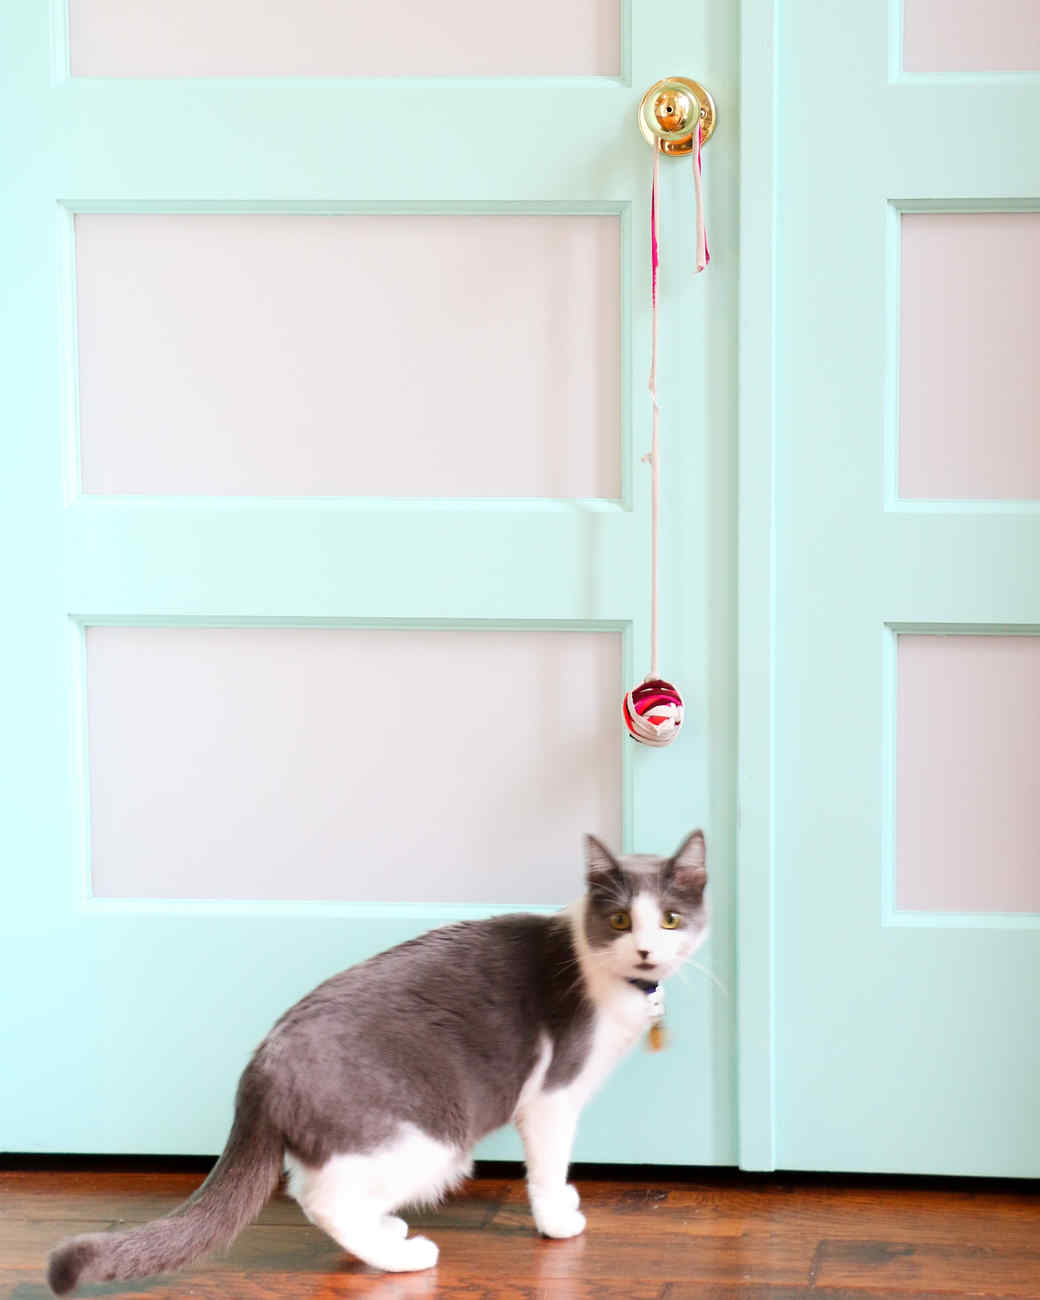 knotted cat toy hanging from doorknob